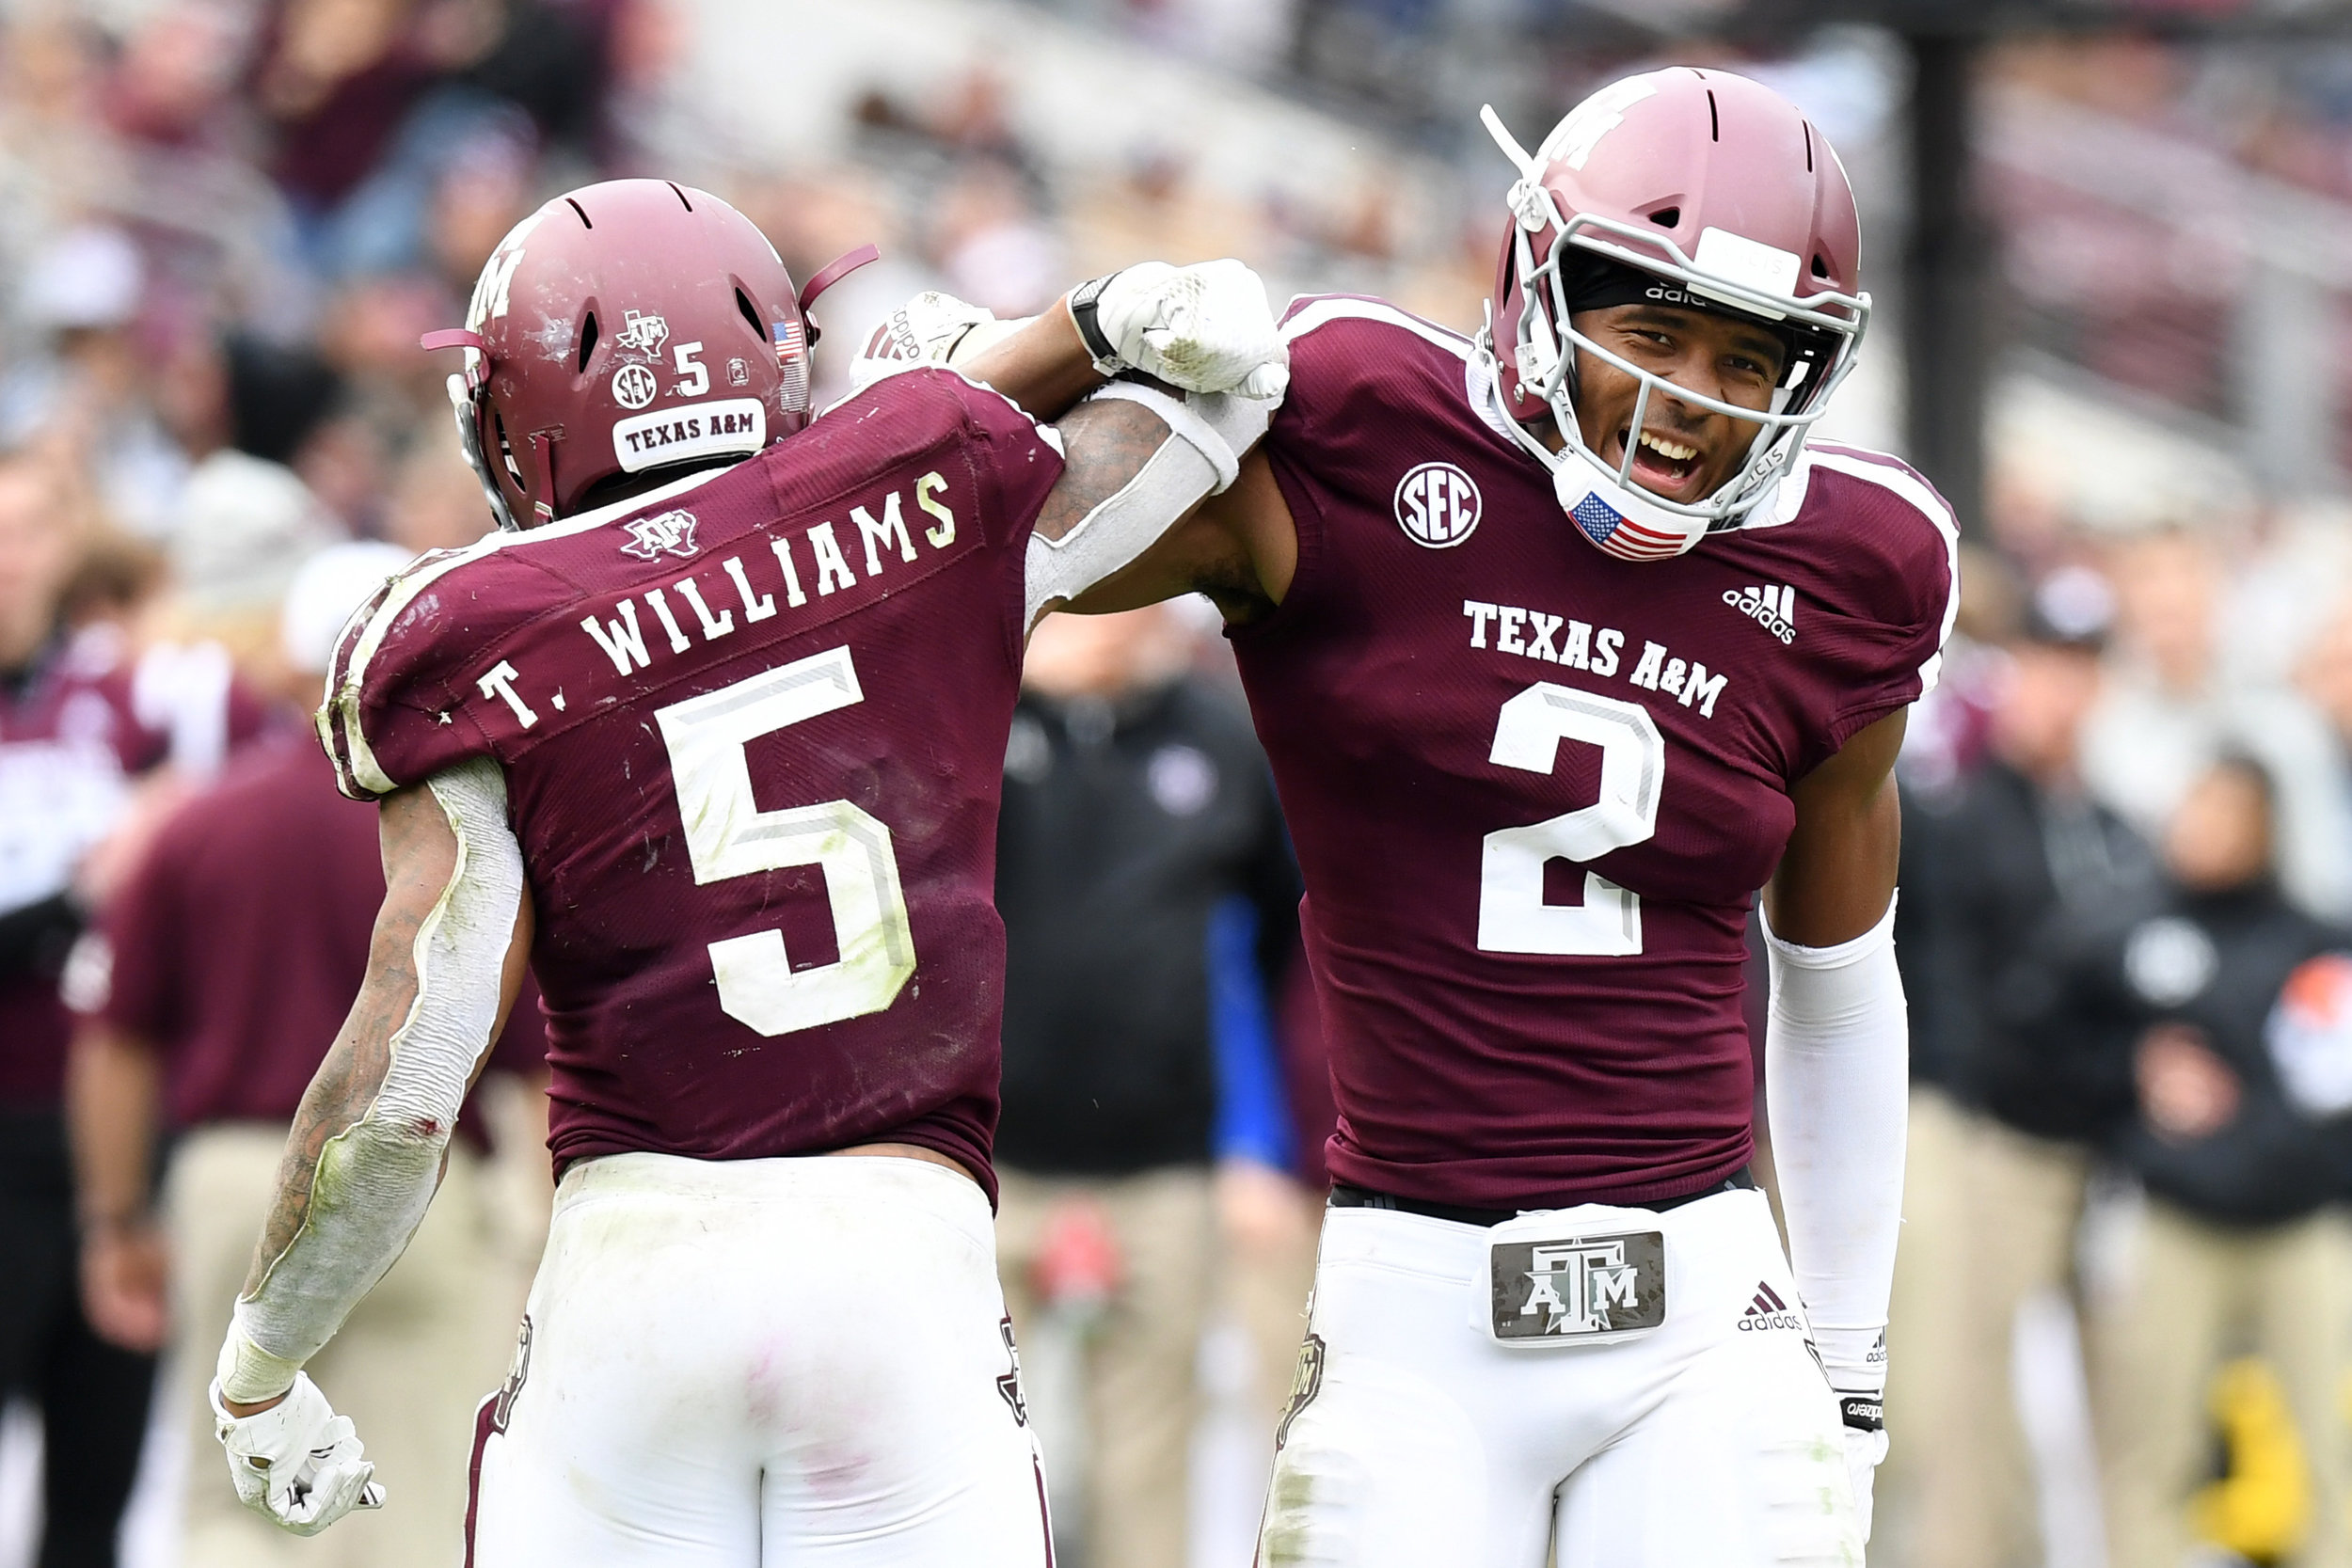 Texas A&M's Trayveon Wiliams (5) and Jhamon Ausbon (2) celebrate following a play in the fourth quarter against Ole Miss on Saturday, Nov. 10, 2018, at Kyle Field in College Station, Texas. (Laura McKenzie/The Eagle)